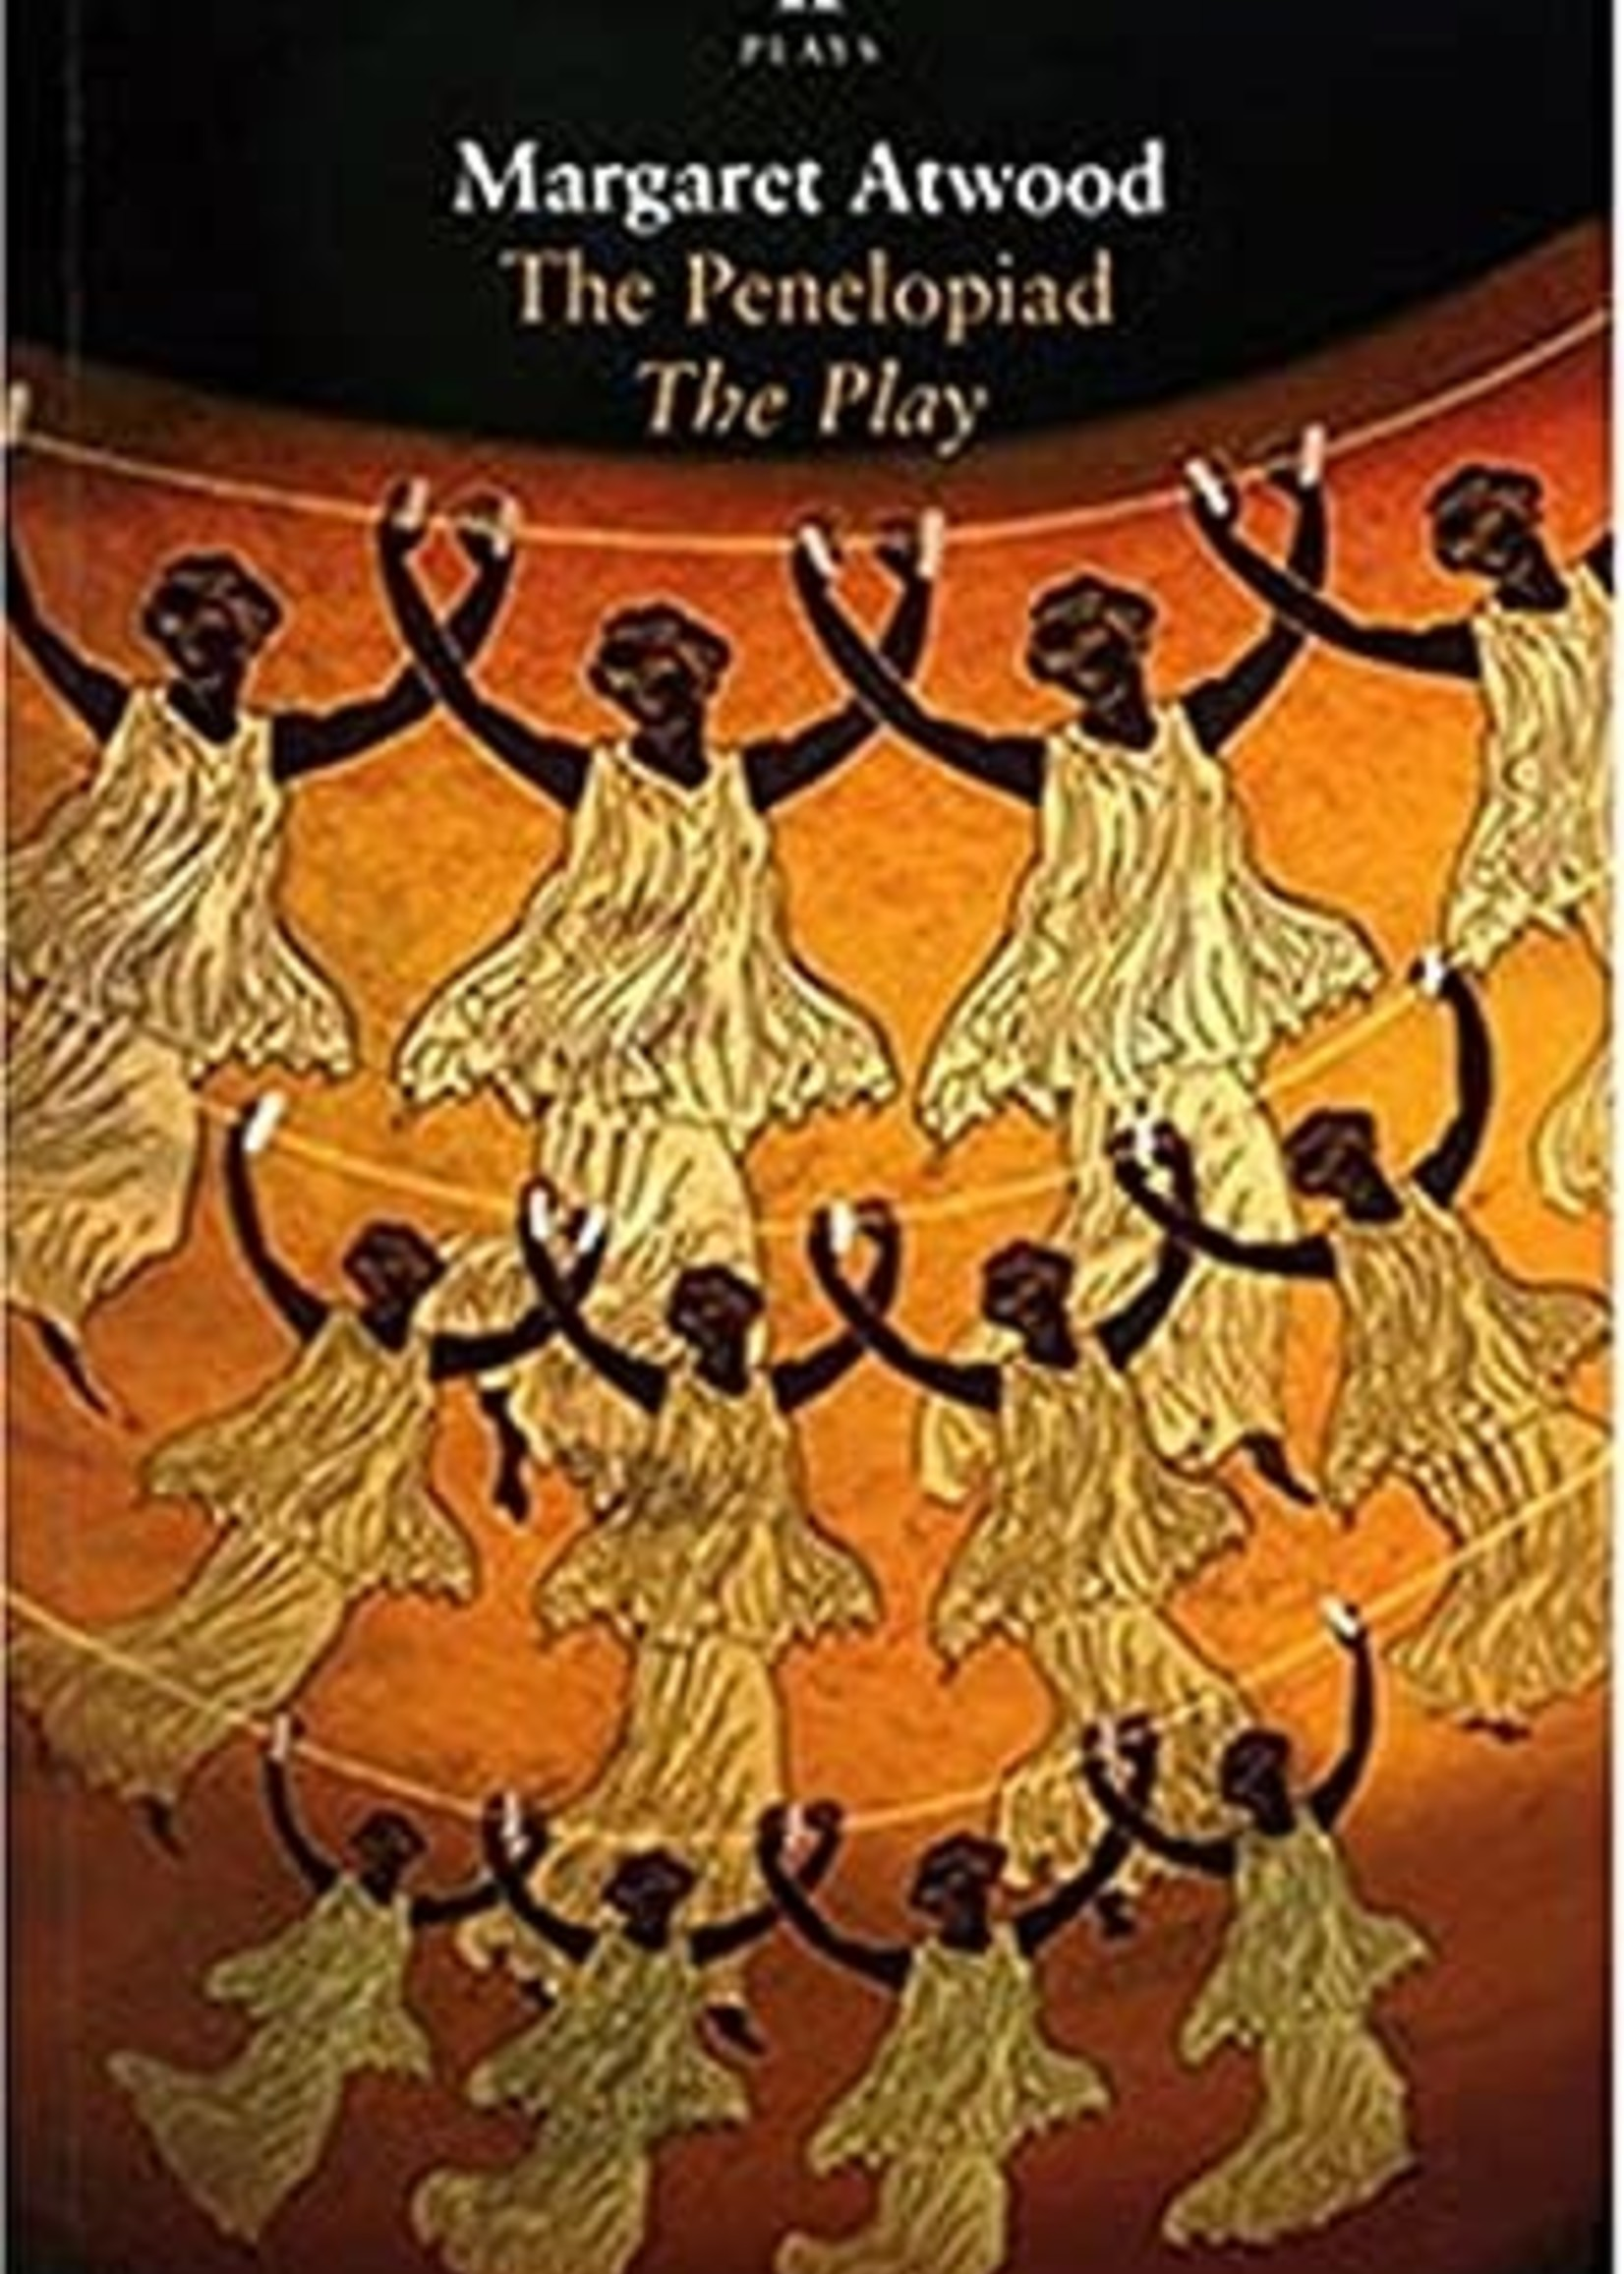 The Penelopiad: The Play by Margaret Atwood